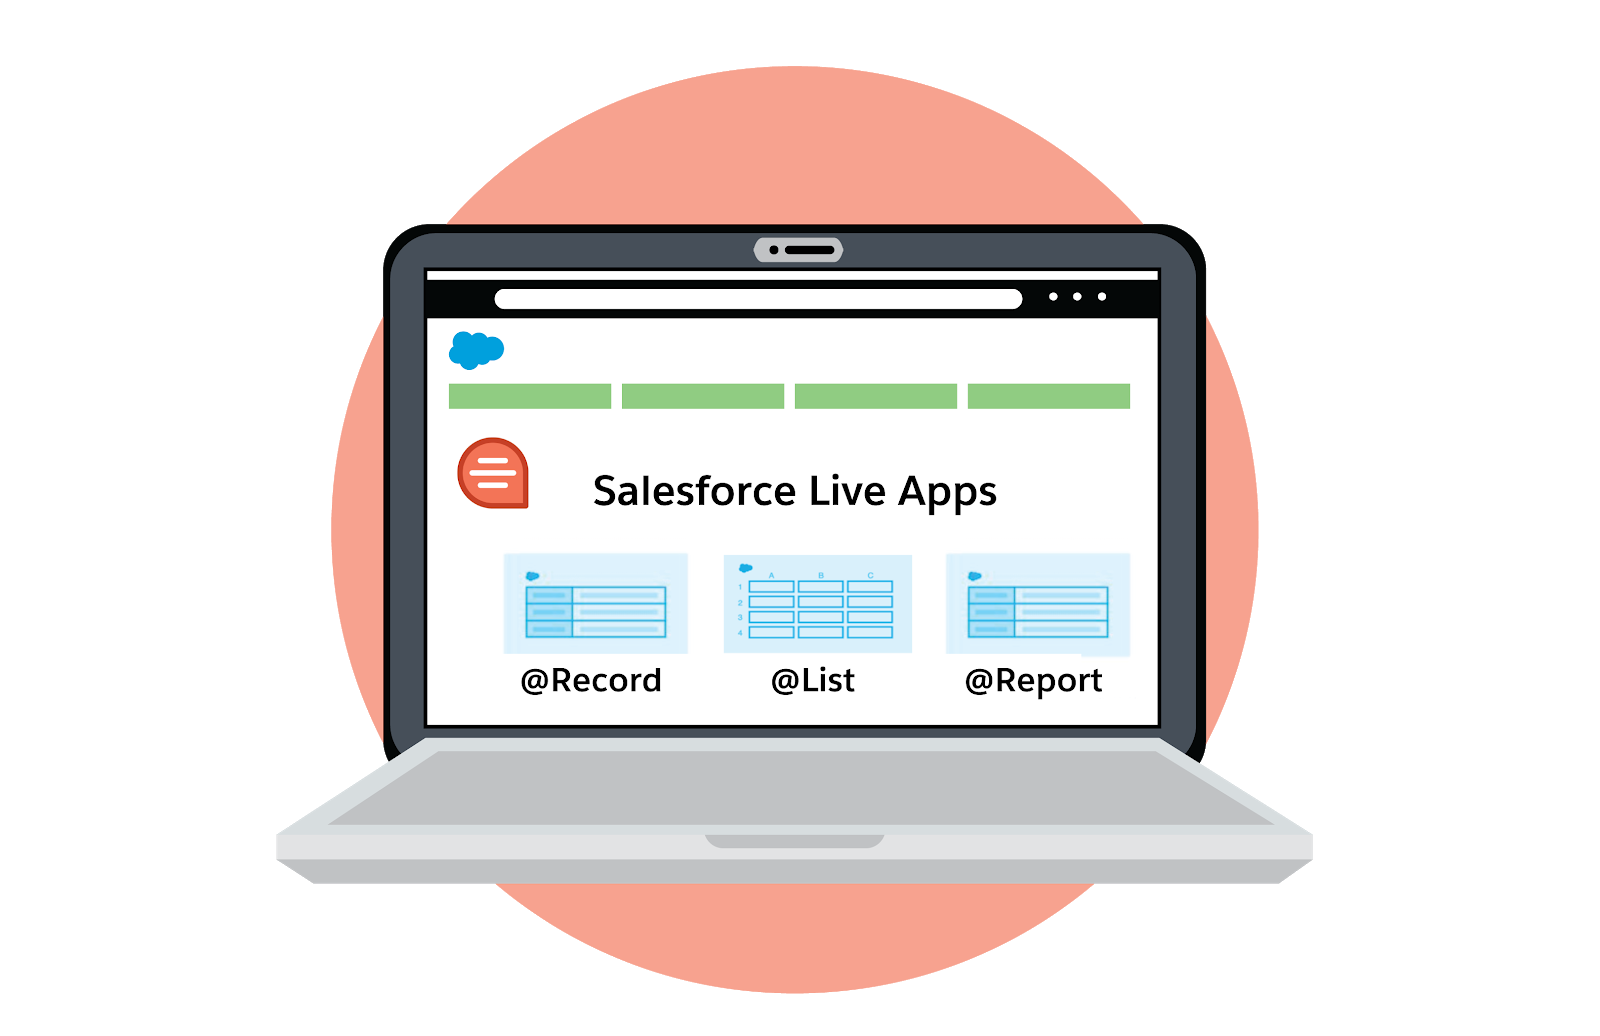 Laptop showing Salesforce Live Apps: @record, @report, @list.